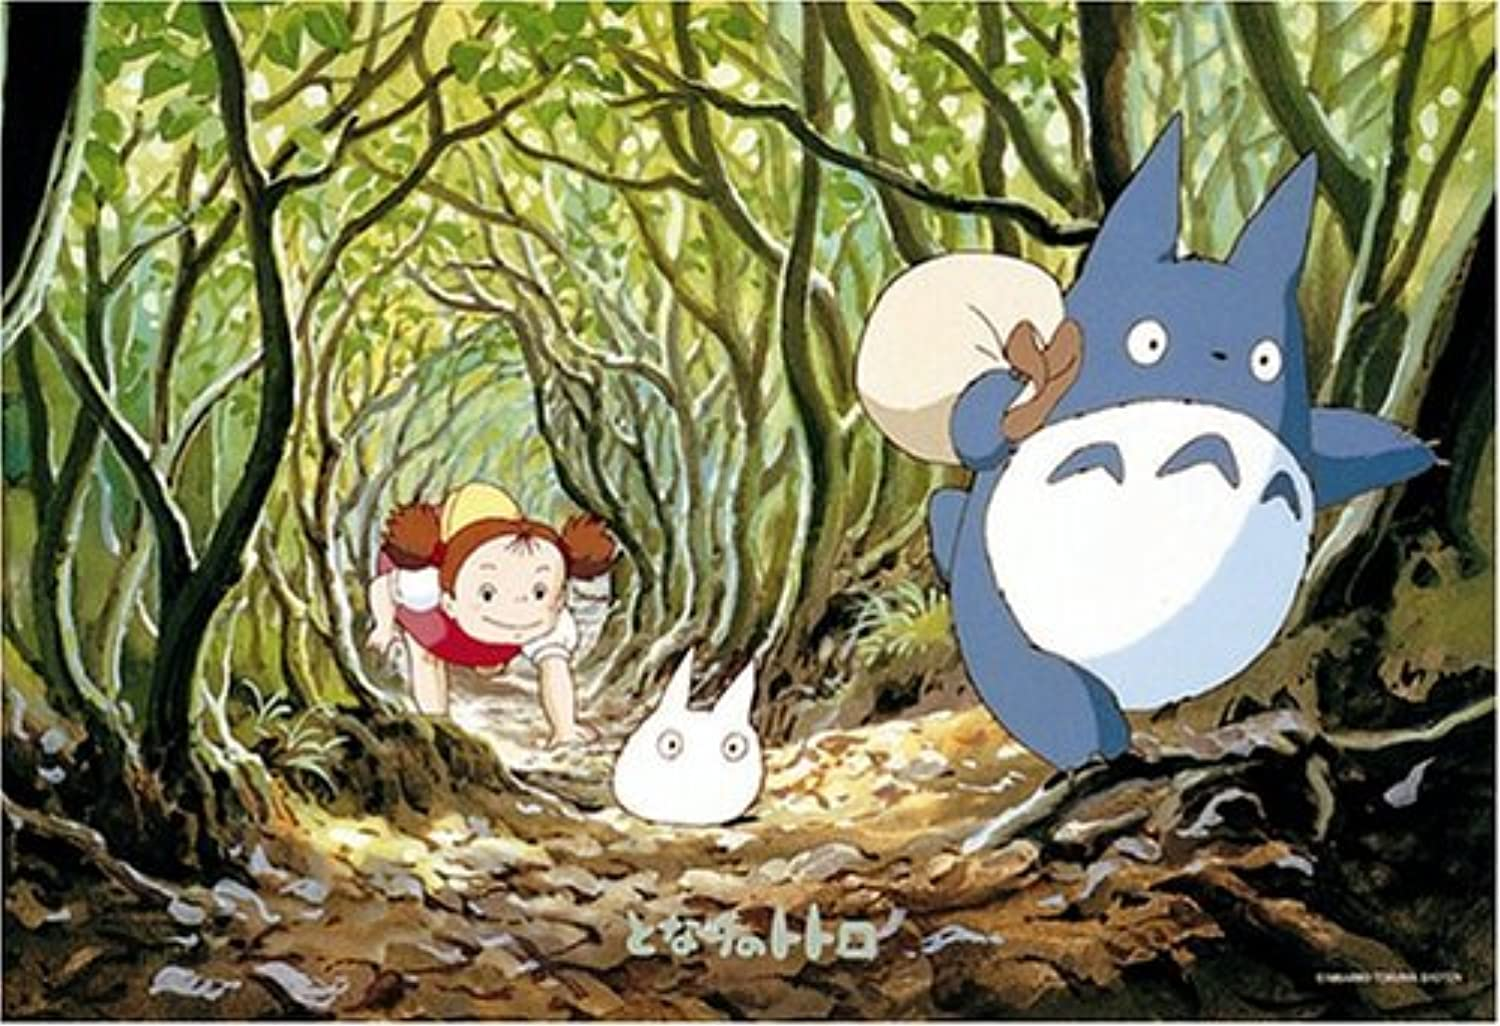 ventas en linea Studio Ghibli My Neighbor Totoro 300 Pieces Pieces Pieces Jigsaw Puzzle (Finished Talla 15 ... (japan import) by ensky  Mercancía de alta calidad y servicio conveniente y honesto.